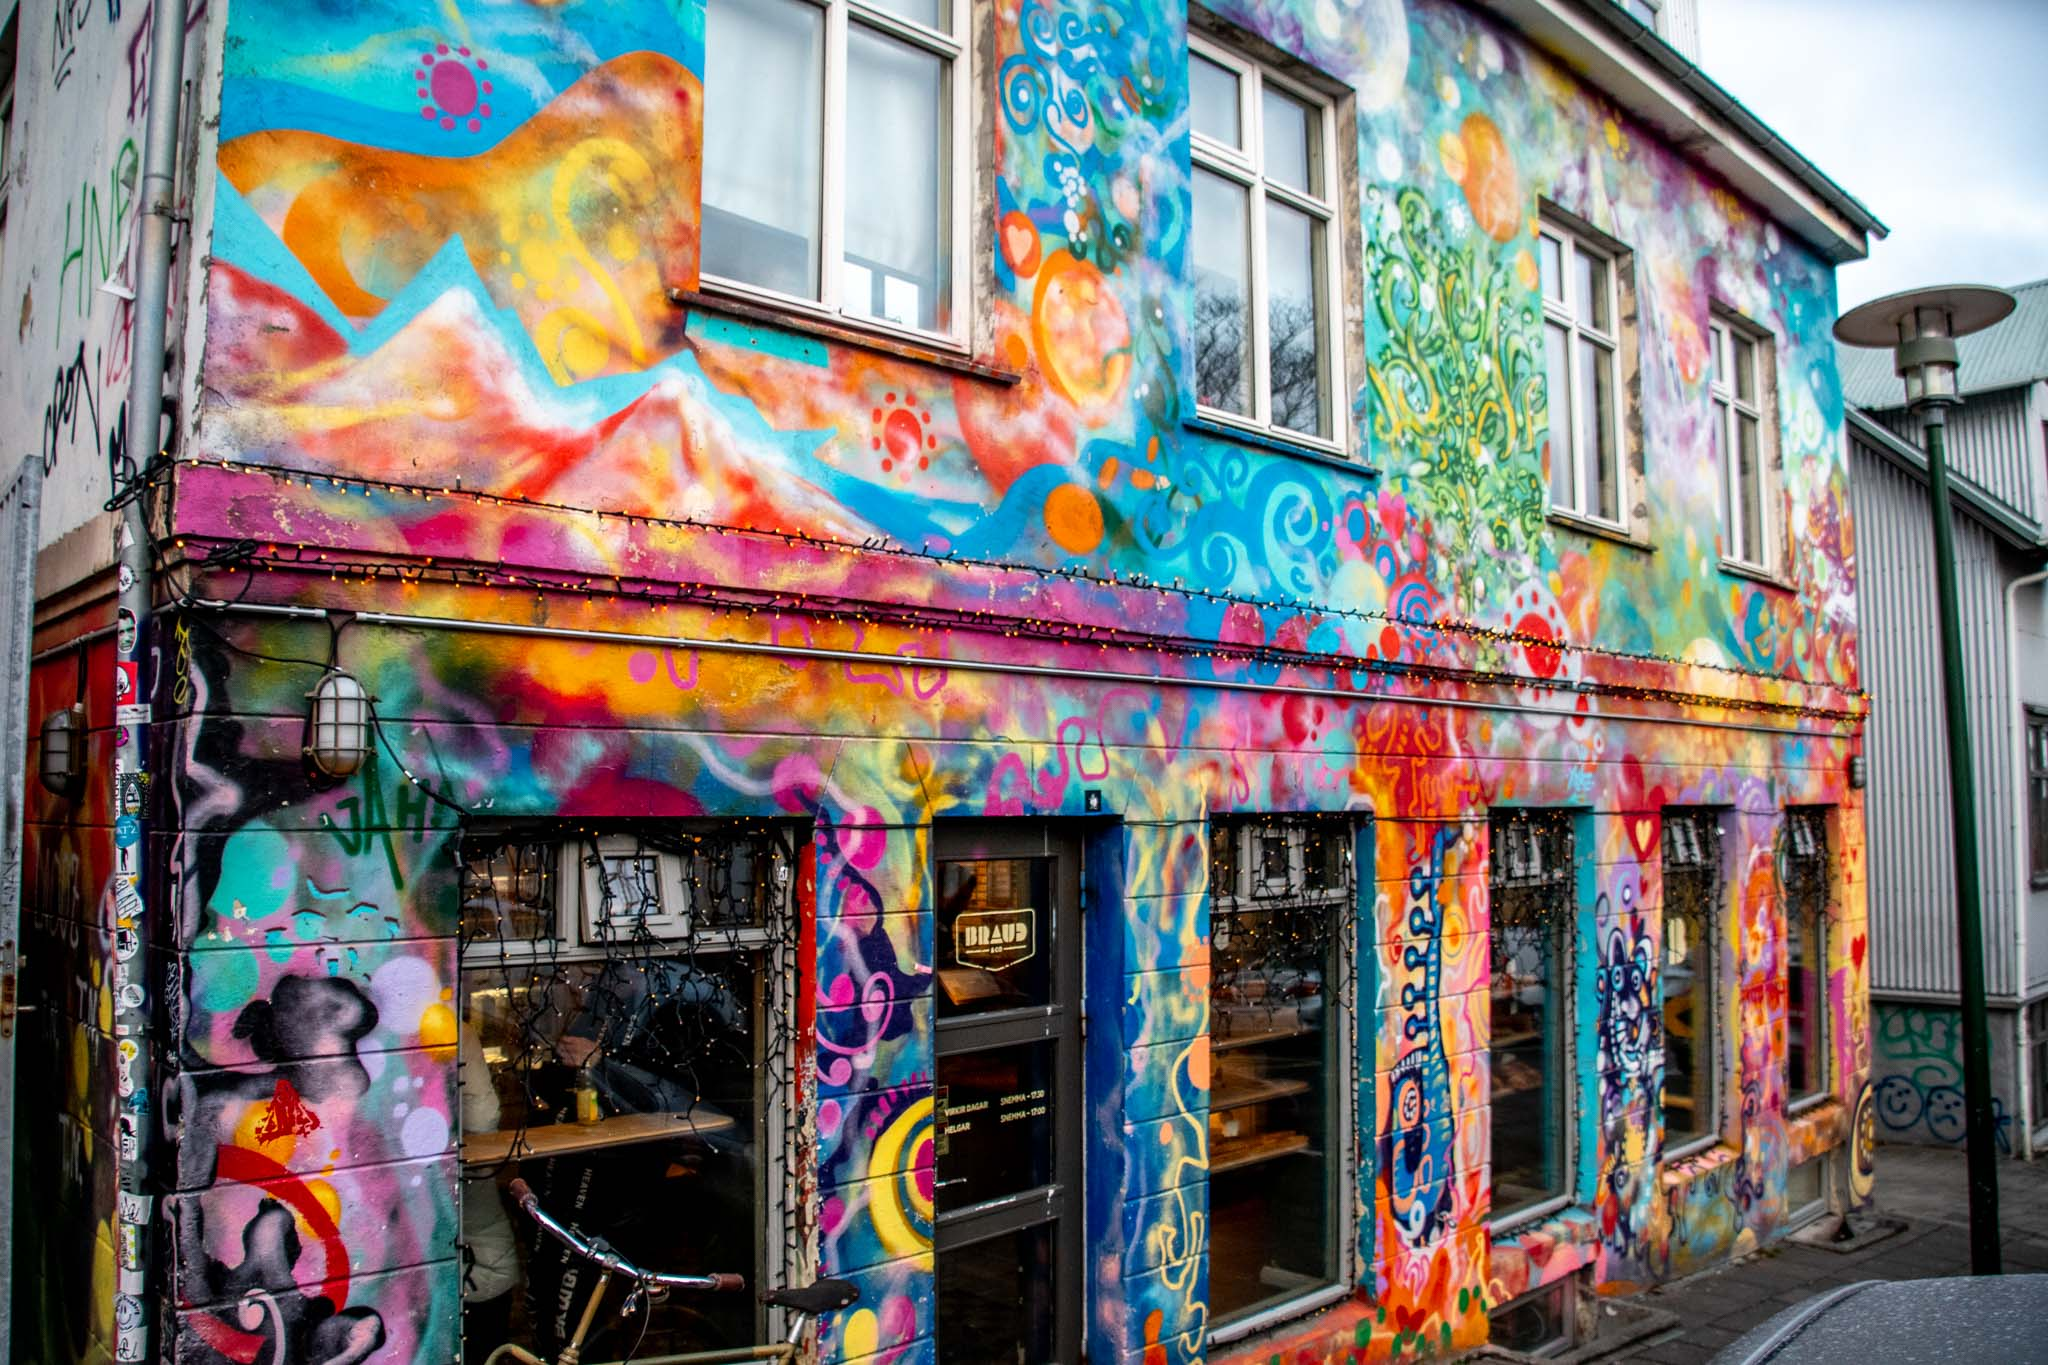 Businesses hire wall muralists to decorate their premises, such as Braud & Co.